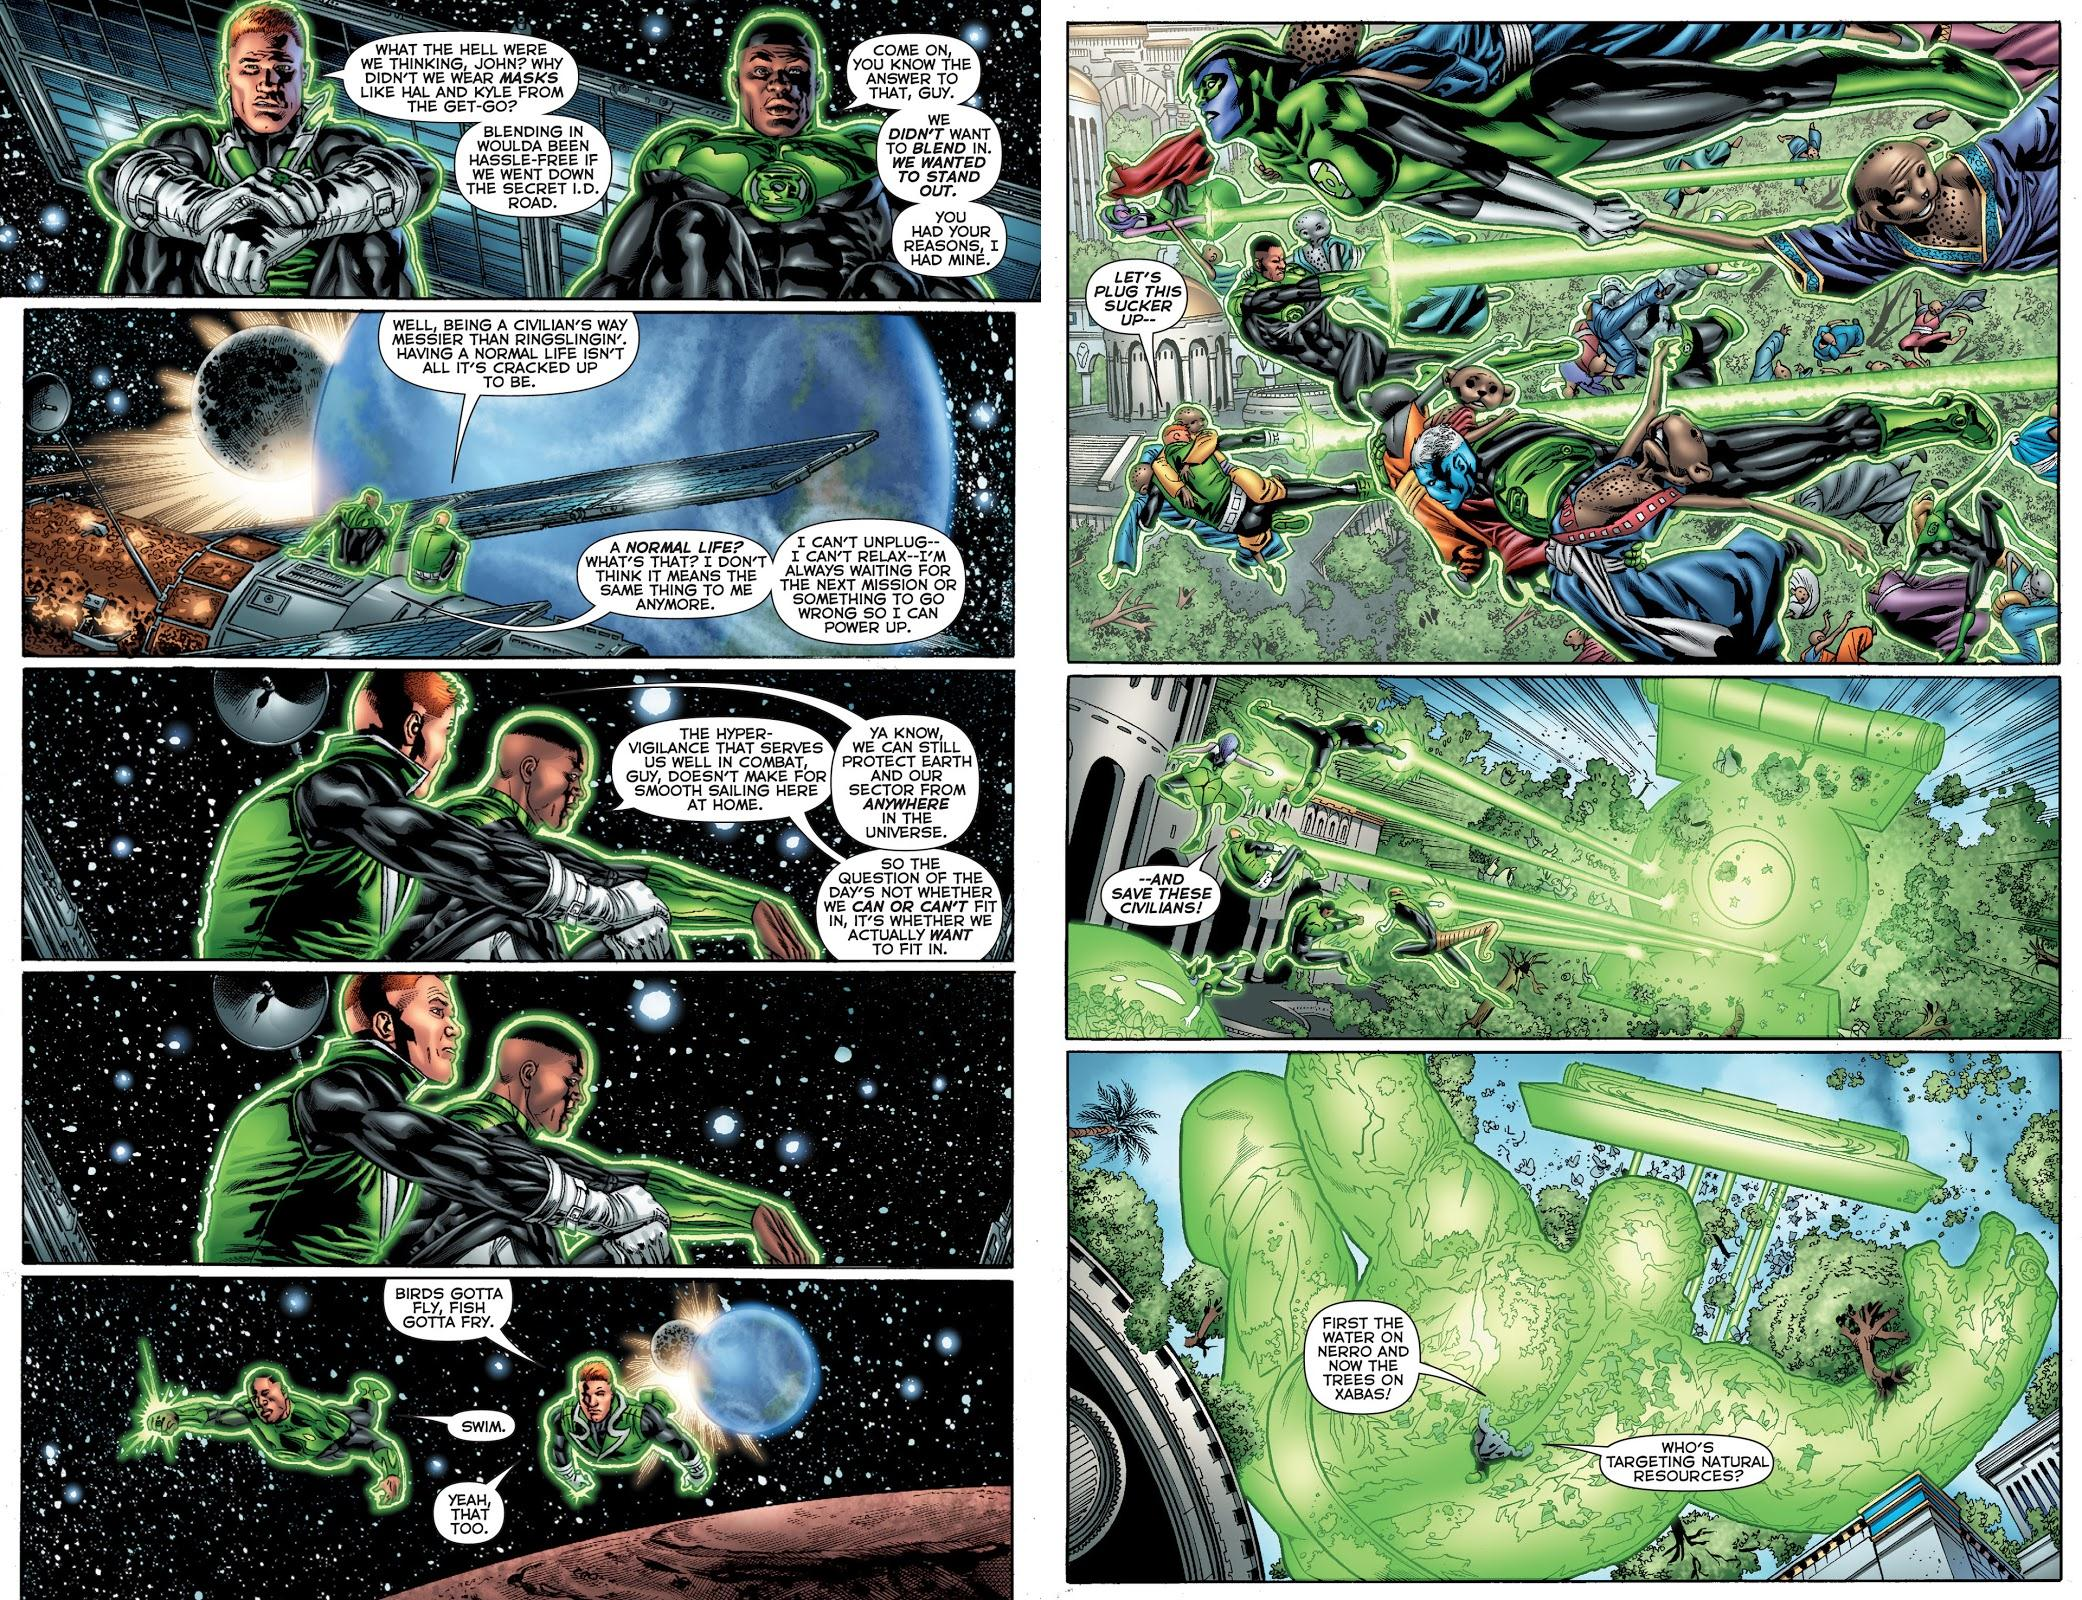 Green Lantern Corps V1 Fearsome review